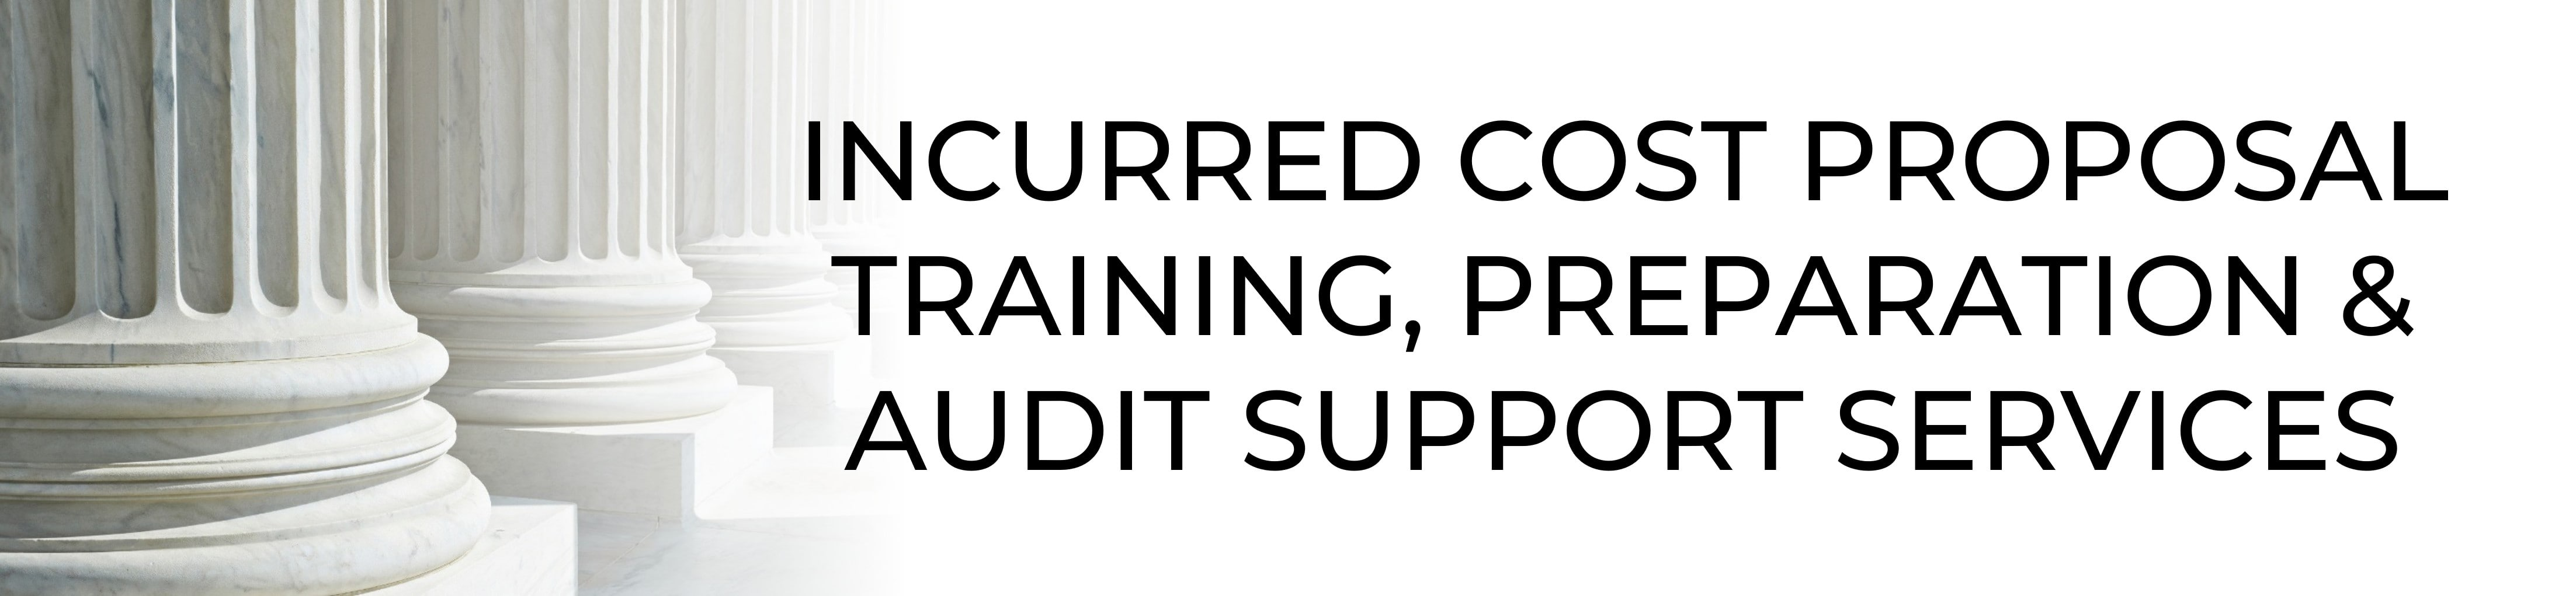 Incurred Cost Proposal Training and Support Services